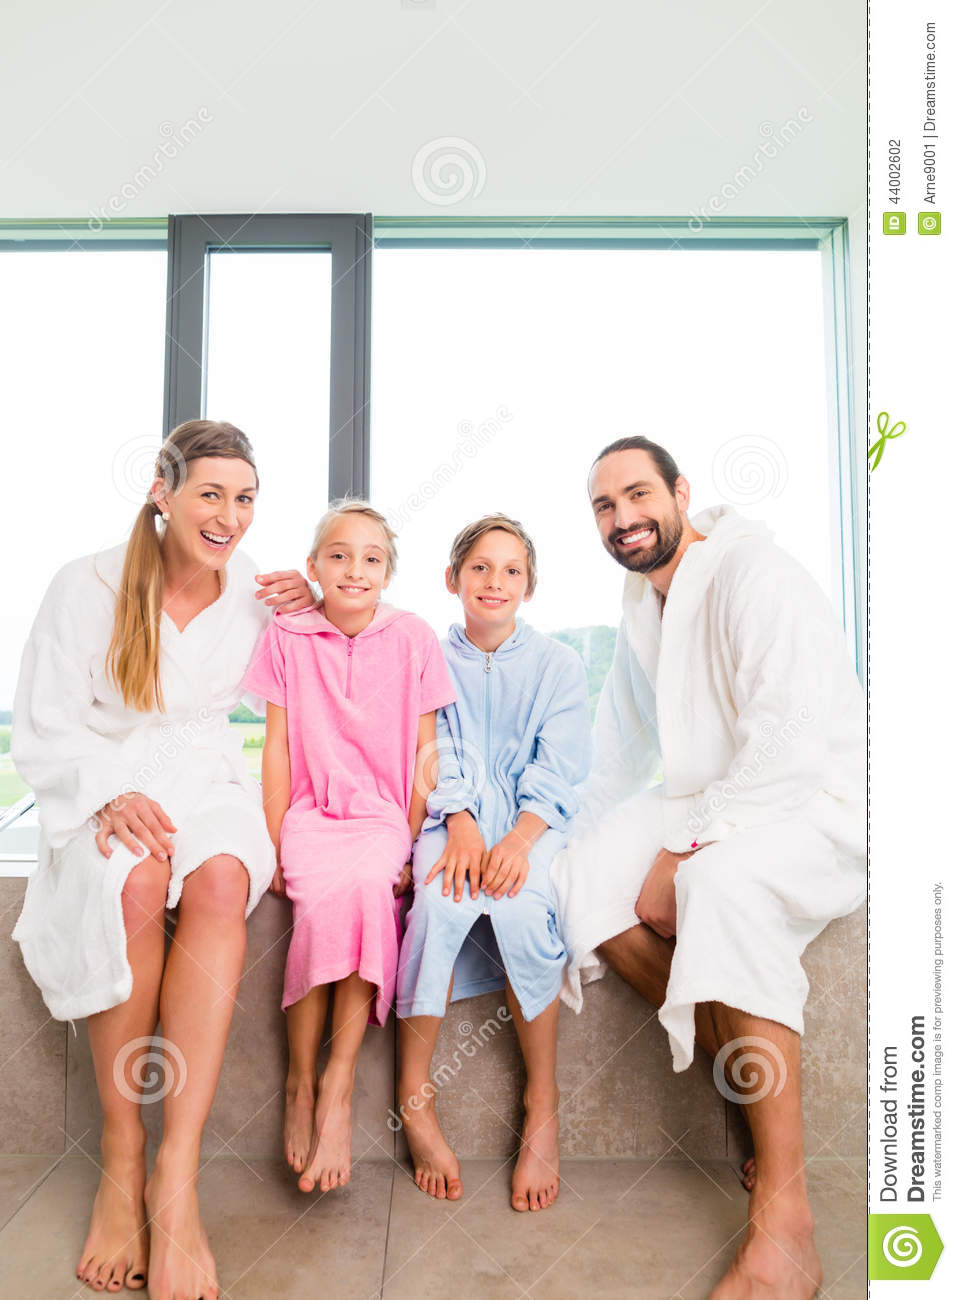 Family Sitting Together On Bathtub Stock Photo - Image: 44002602